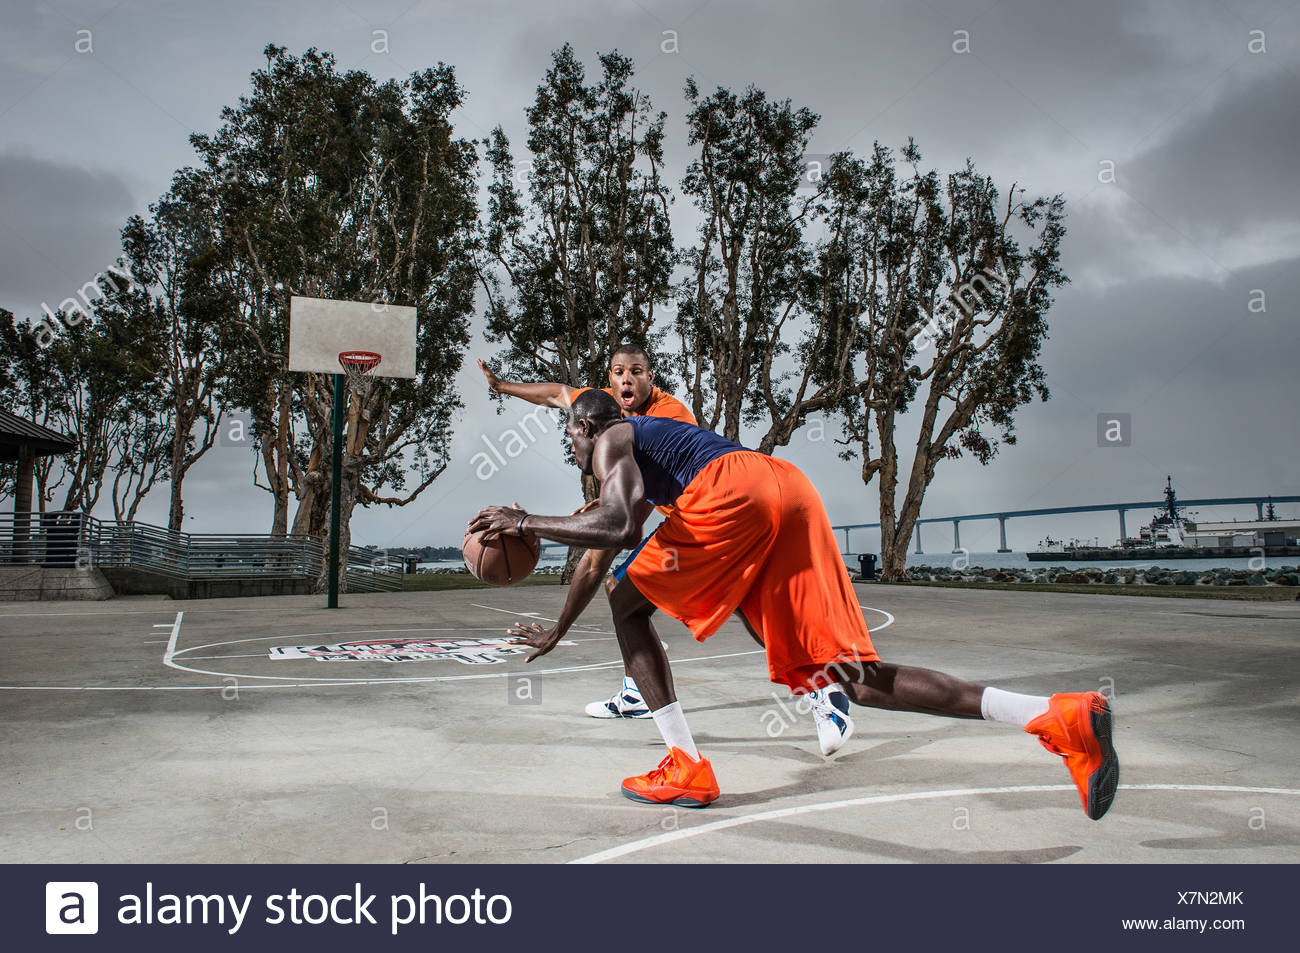 Young men playing basketball on court - Stock Image